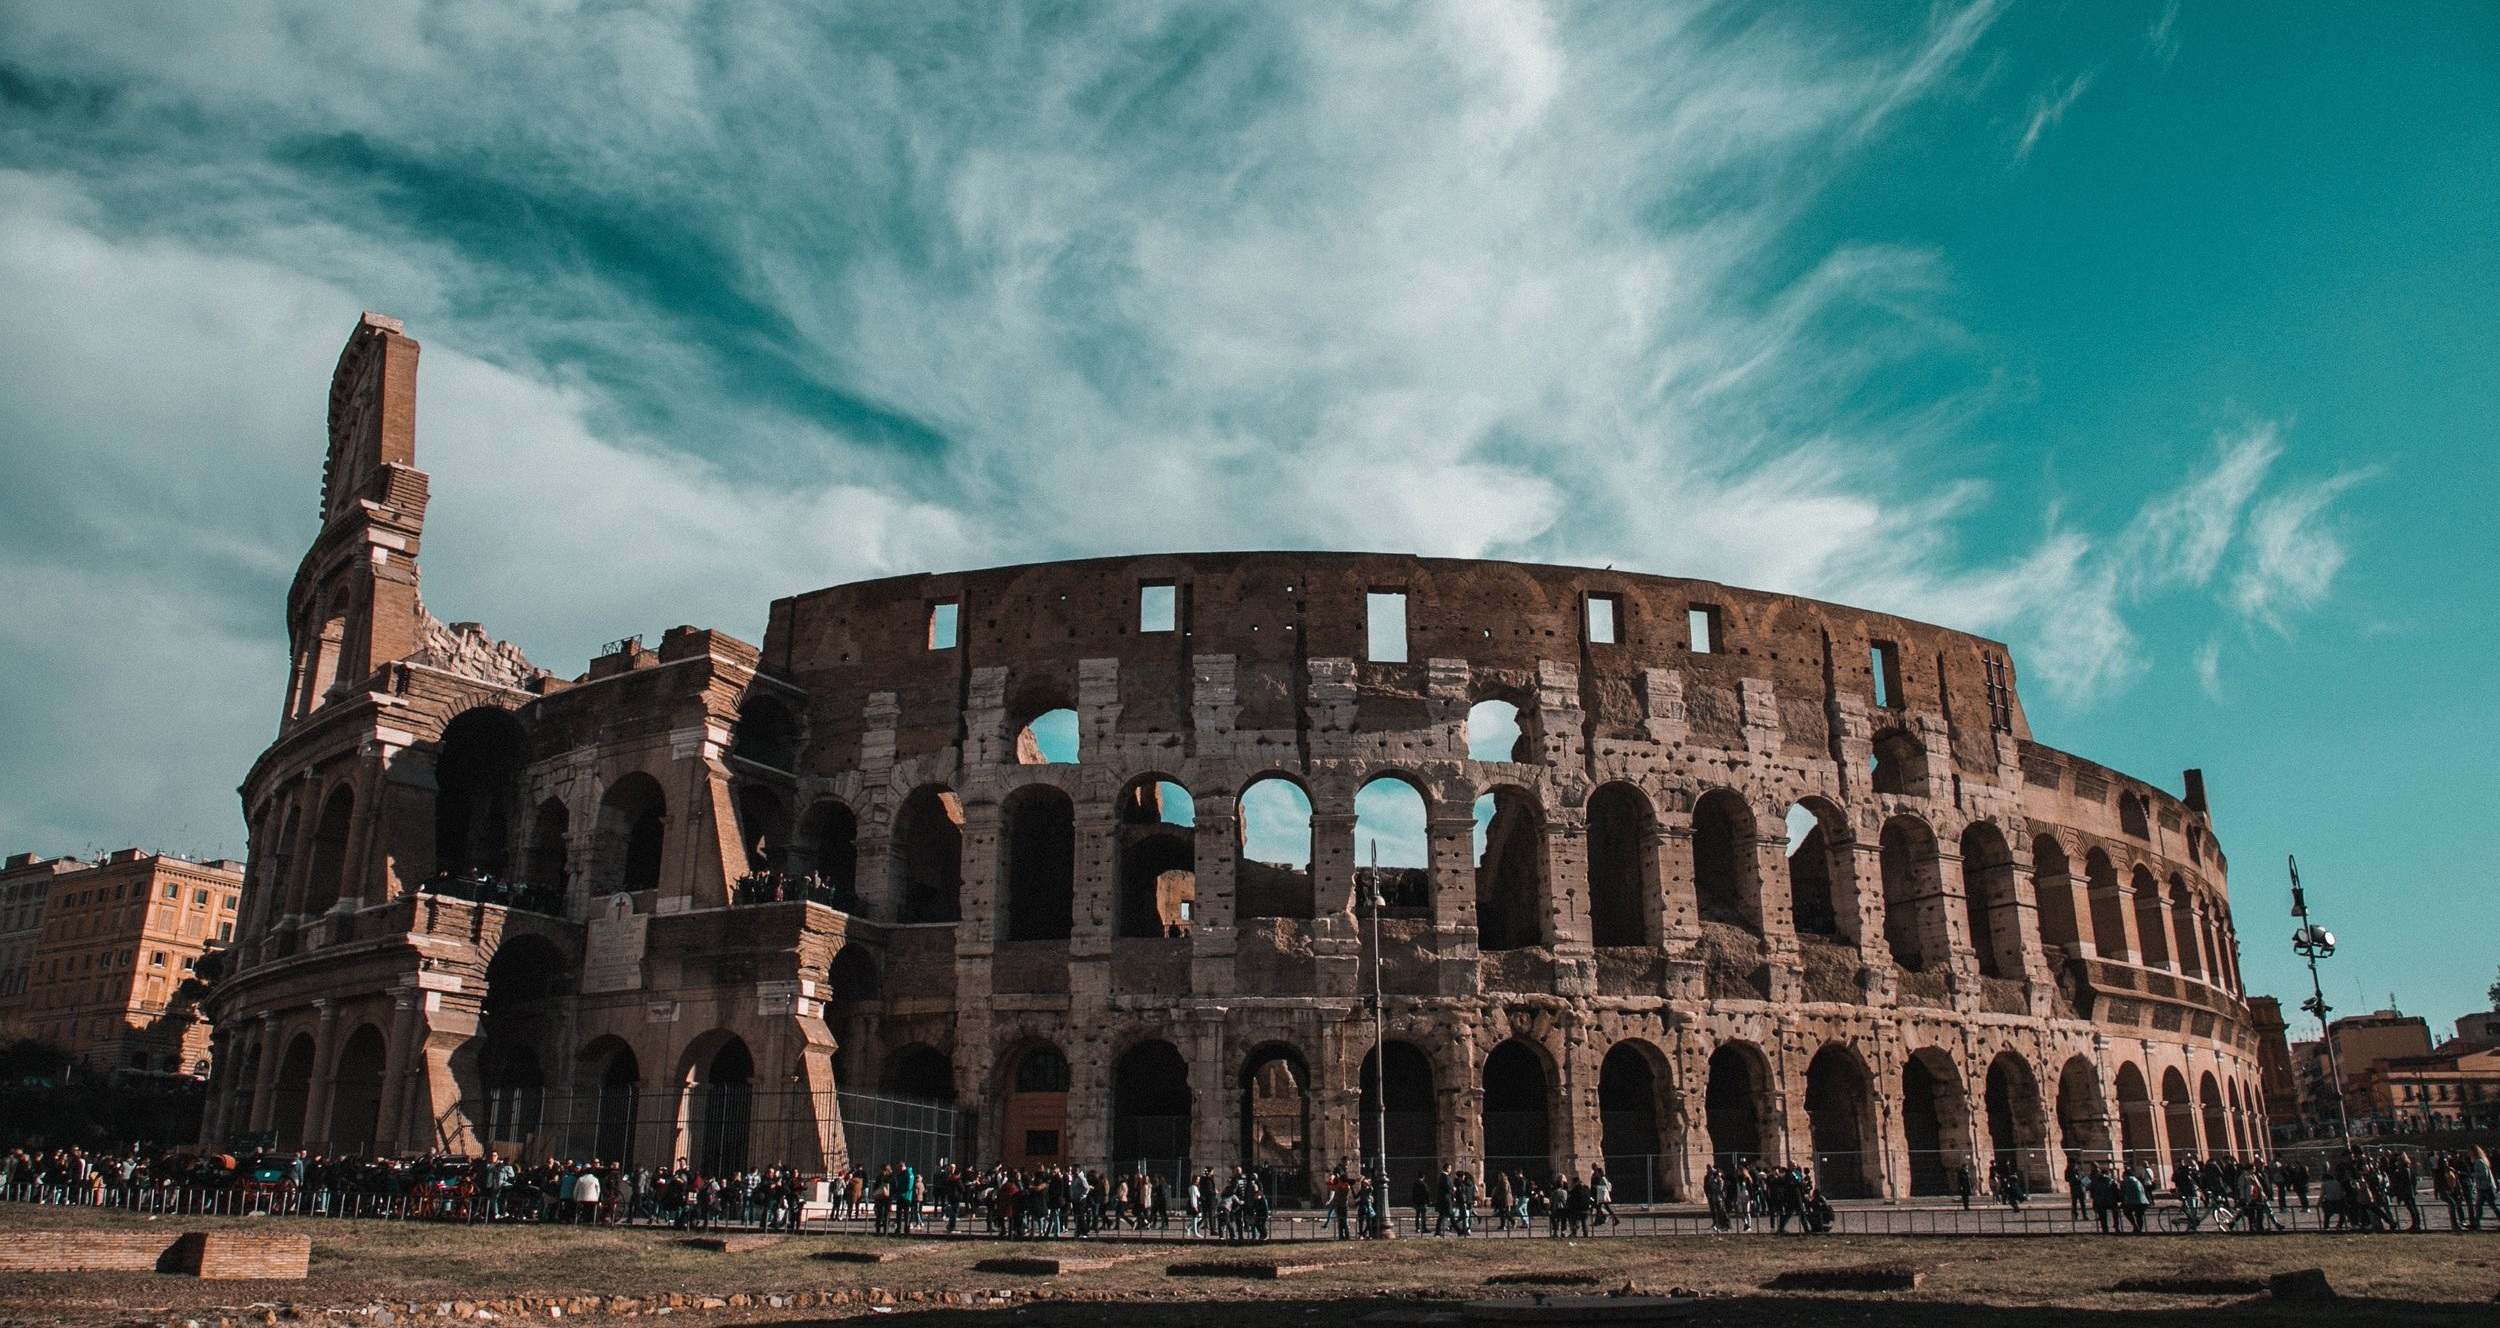 The iconic Roman Colosseum